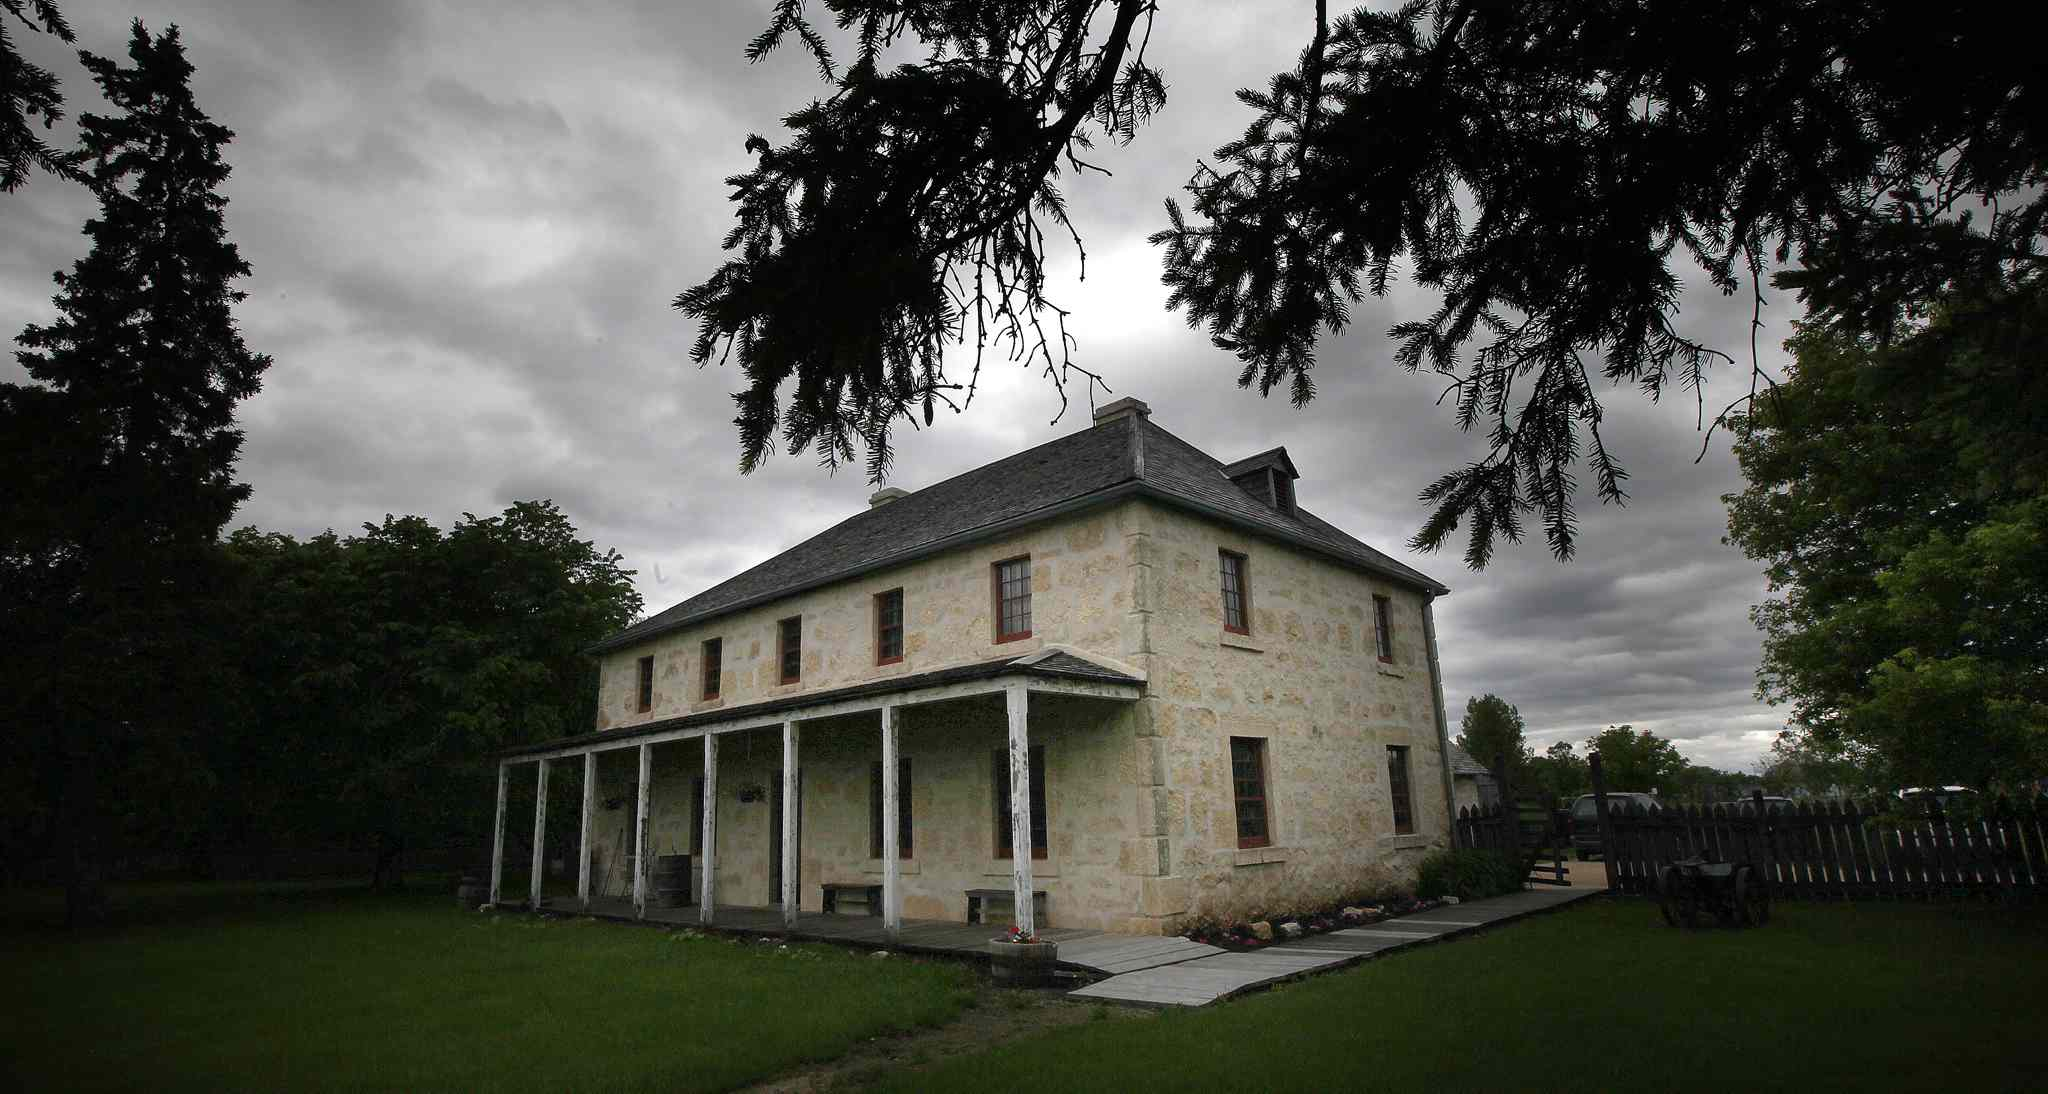 The newly restored historic St. Andrews Rectory on River Road North.